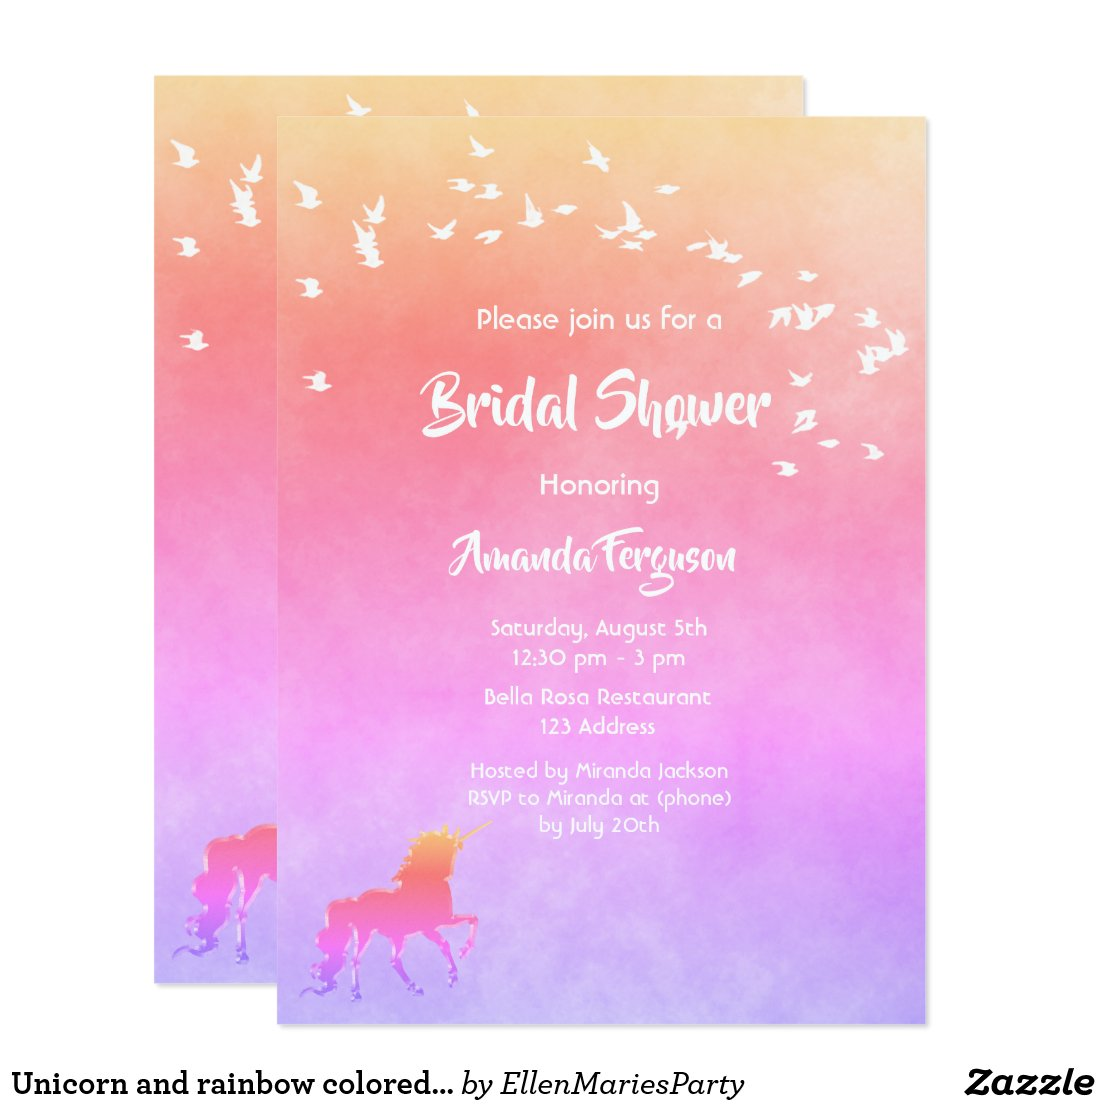 Unicorn and rainbow colored Bridal Shower Card